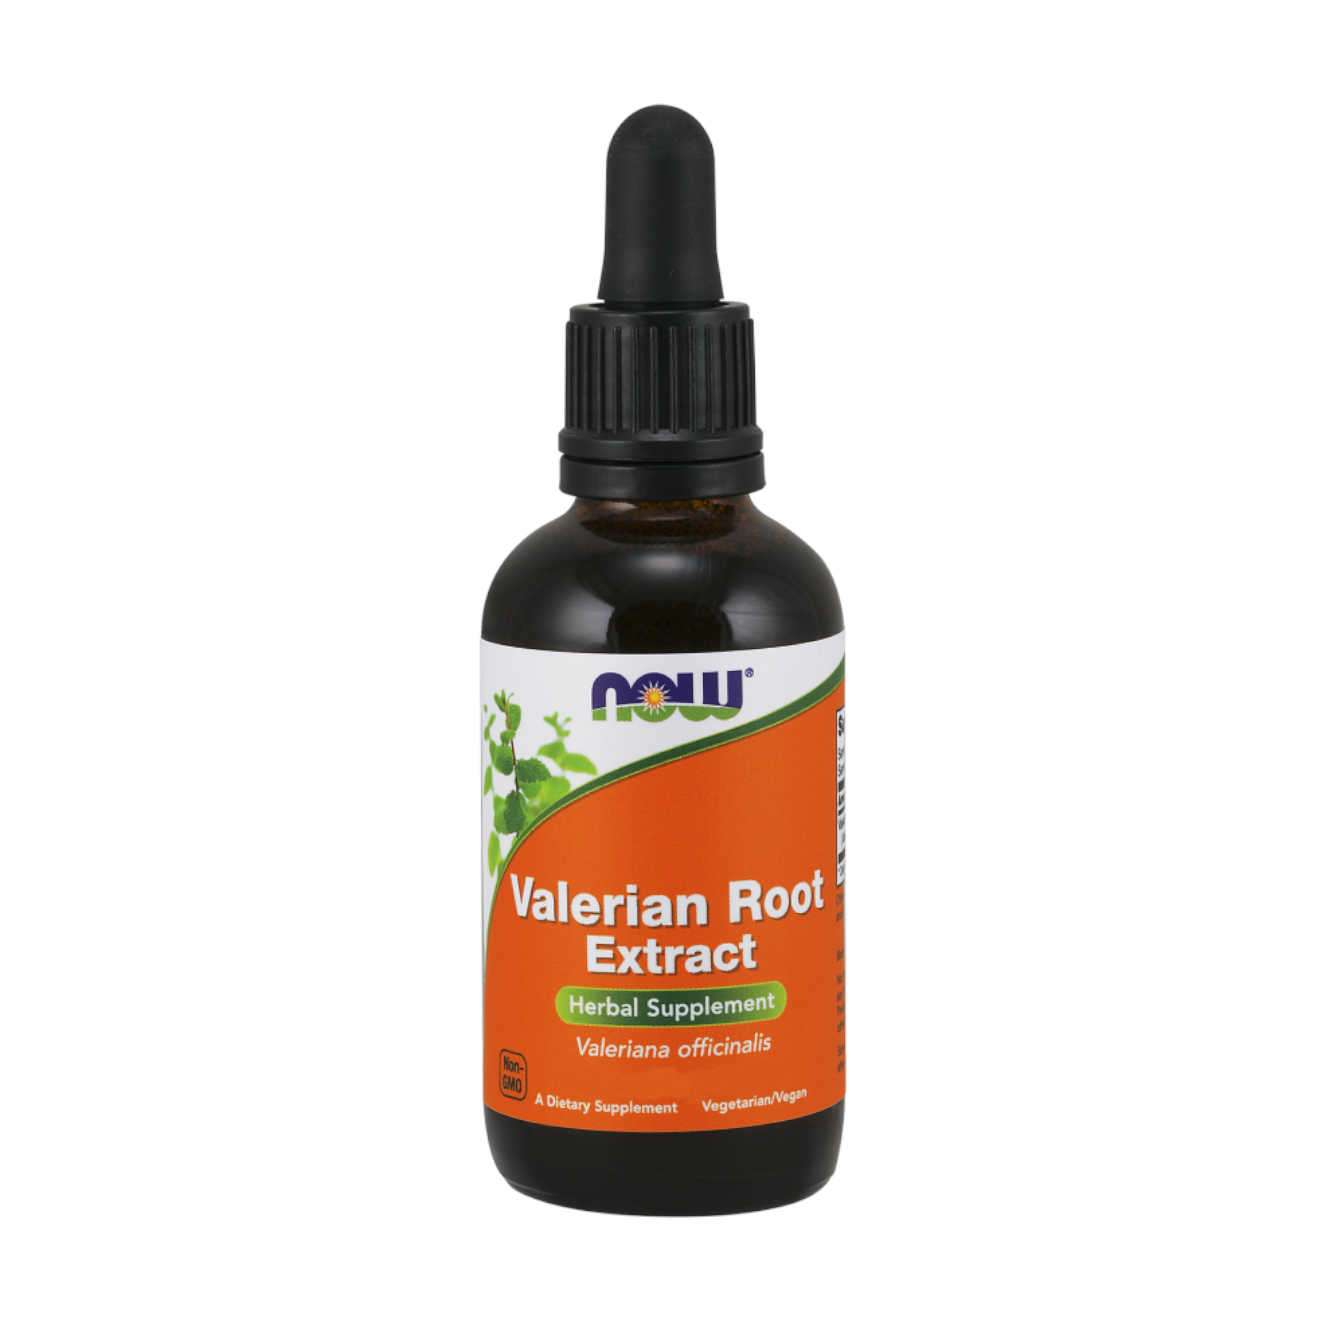 VALERIAN ROOT EXTRACT - 60ml